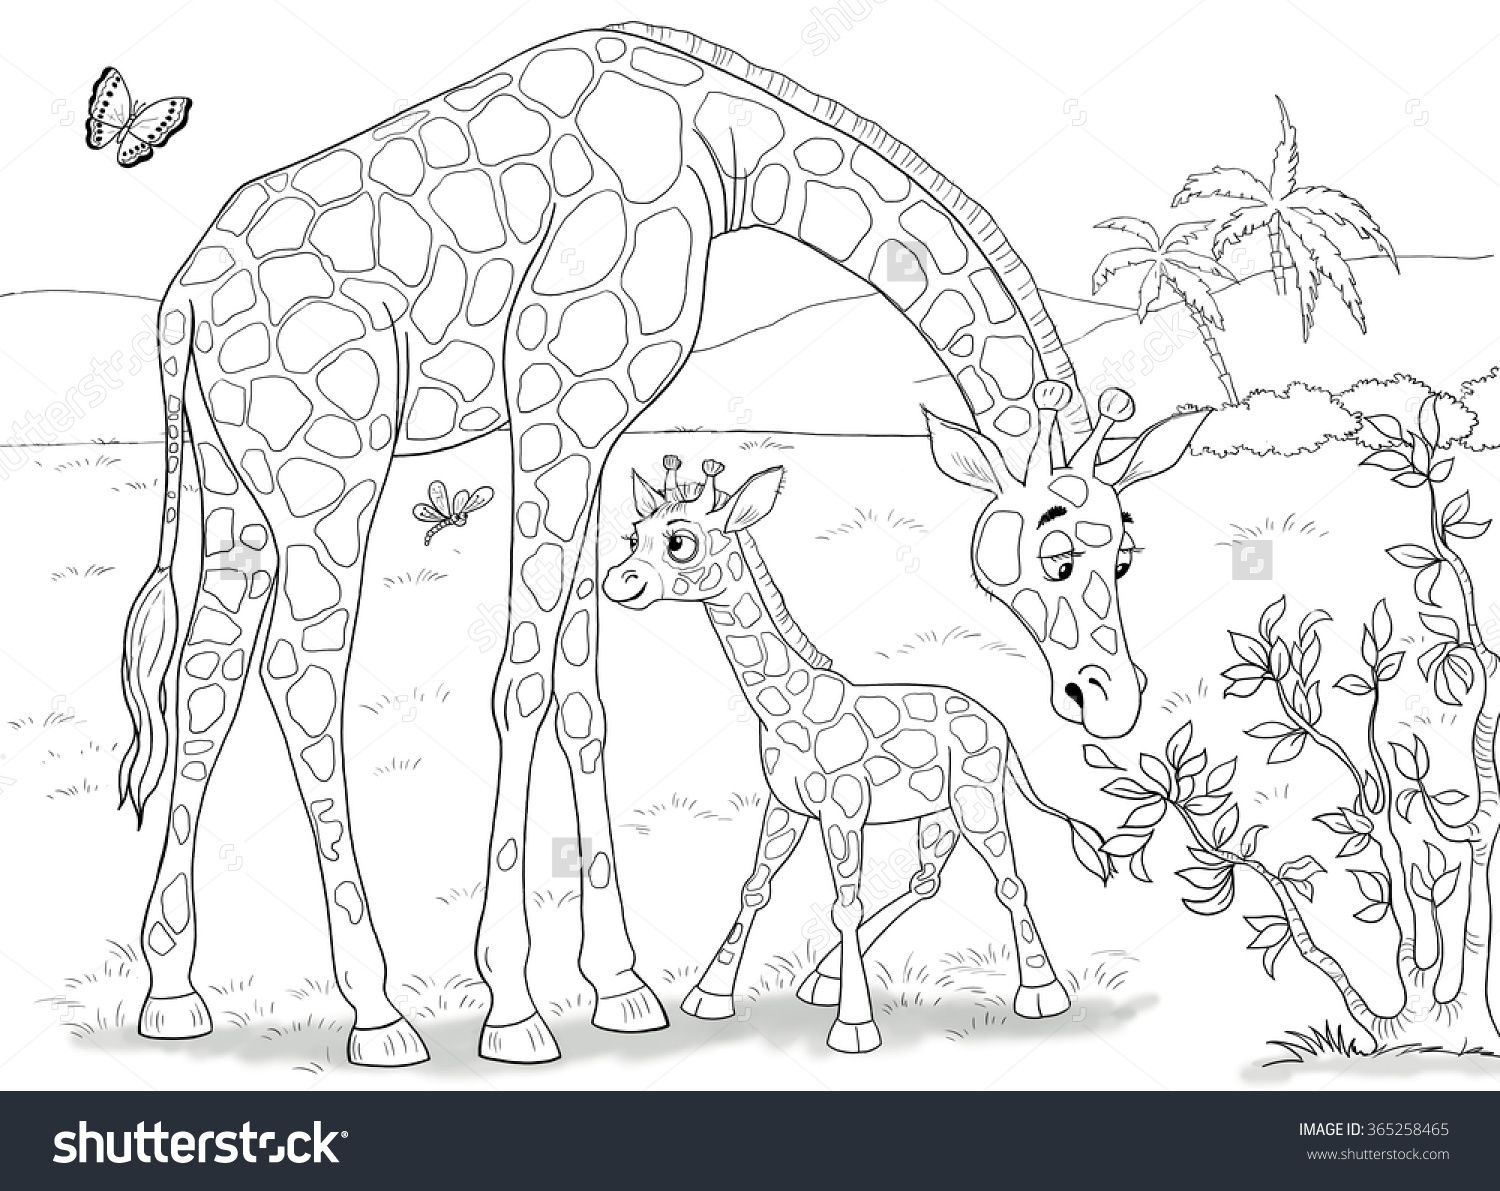 African Savanna Coloring Pages Five Point Star Coloring Pages By - African-savanna-coloring-pages